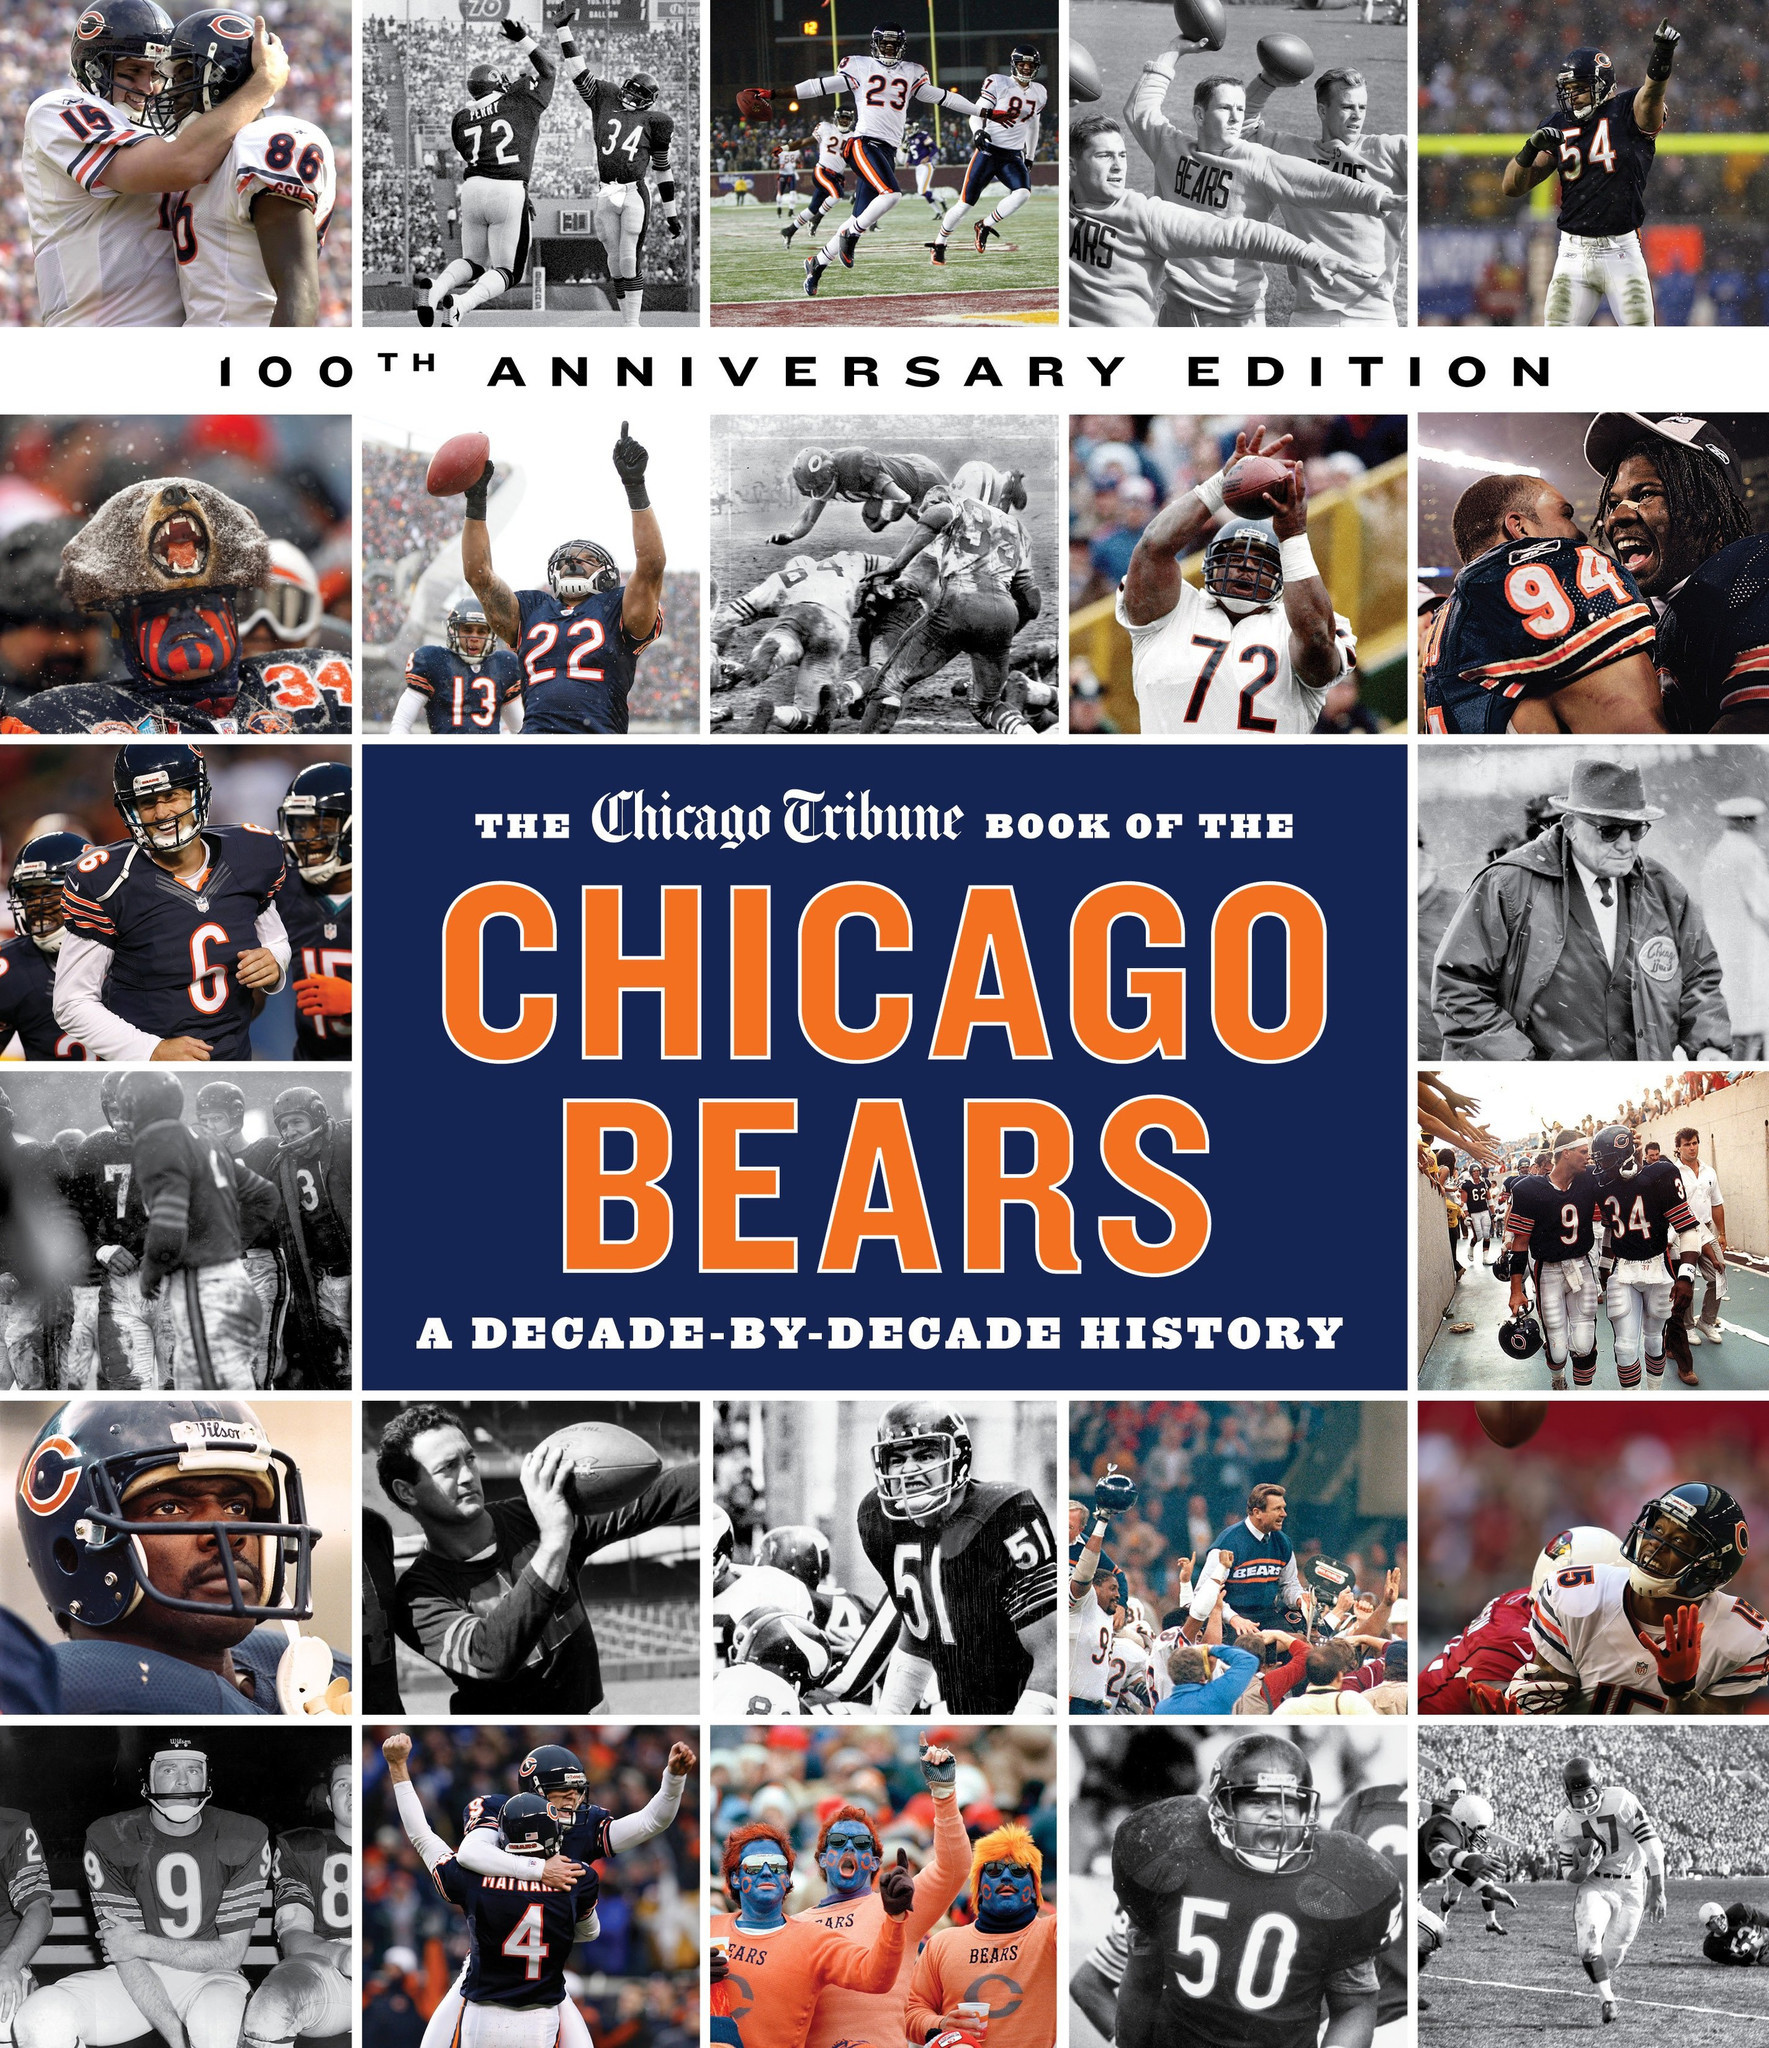 &3#x27;The Chicago Tribune Book of the Chicago Bears: A Decade-By-Decade History, 2nd ed.'